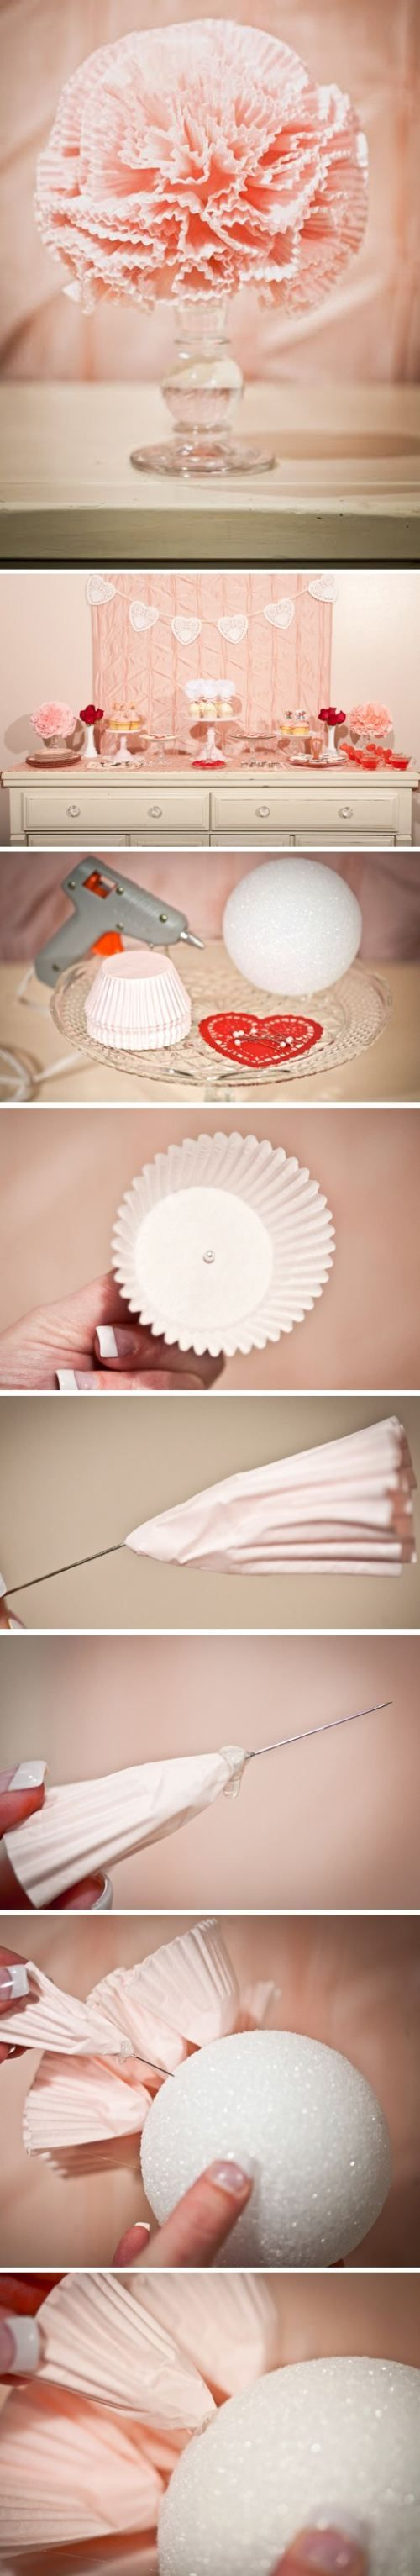 Fun craft with cupcake wrappers!